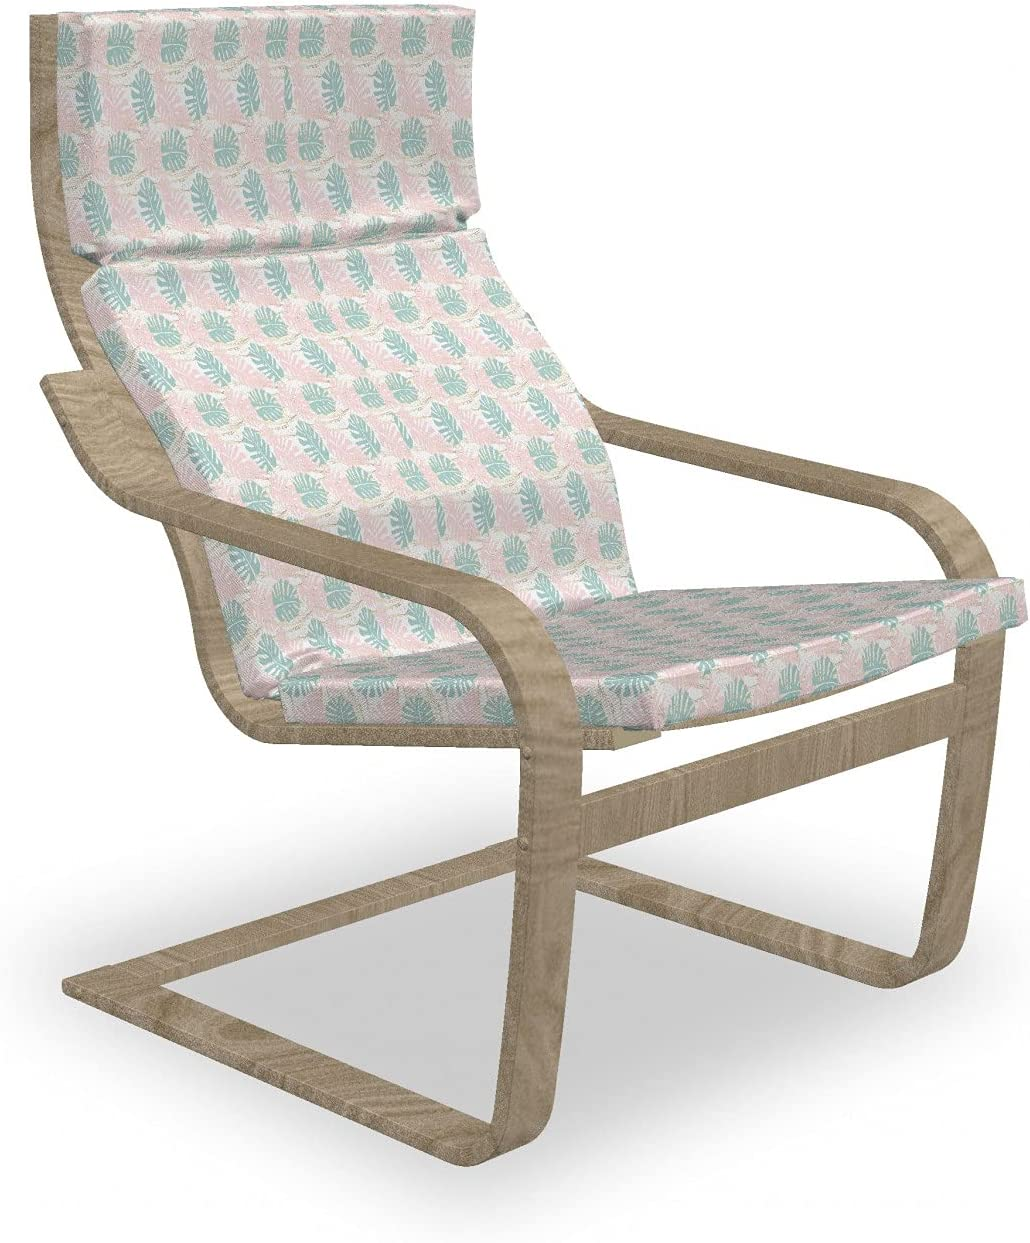 Super special price Ambesonne Blush Pink Armchair Pad Very popular Tropical and Slipcover Patter